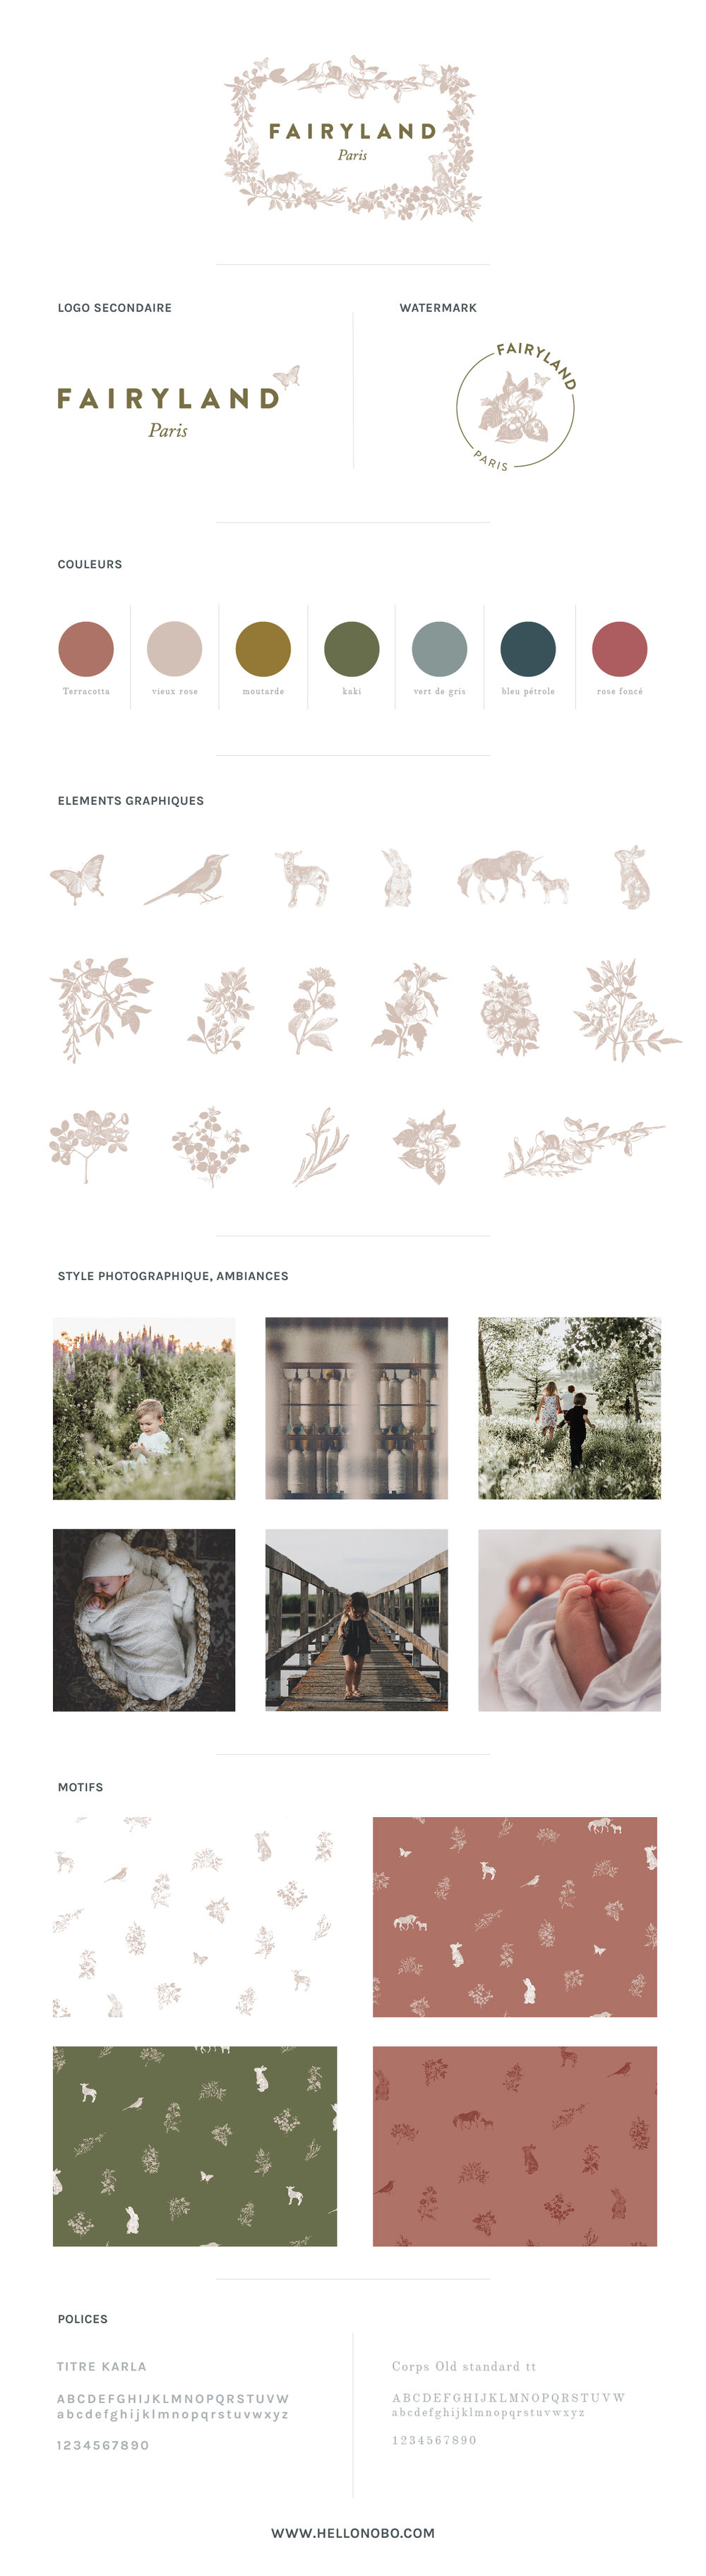 Brand Board Fairyland by Hello Nobo